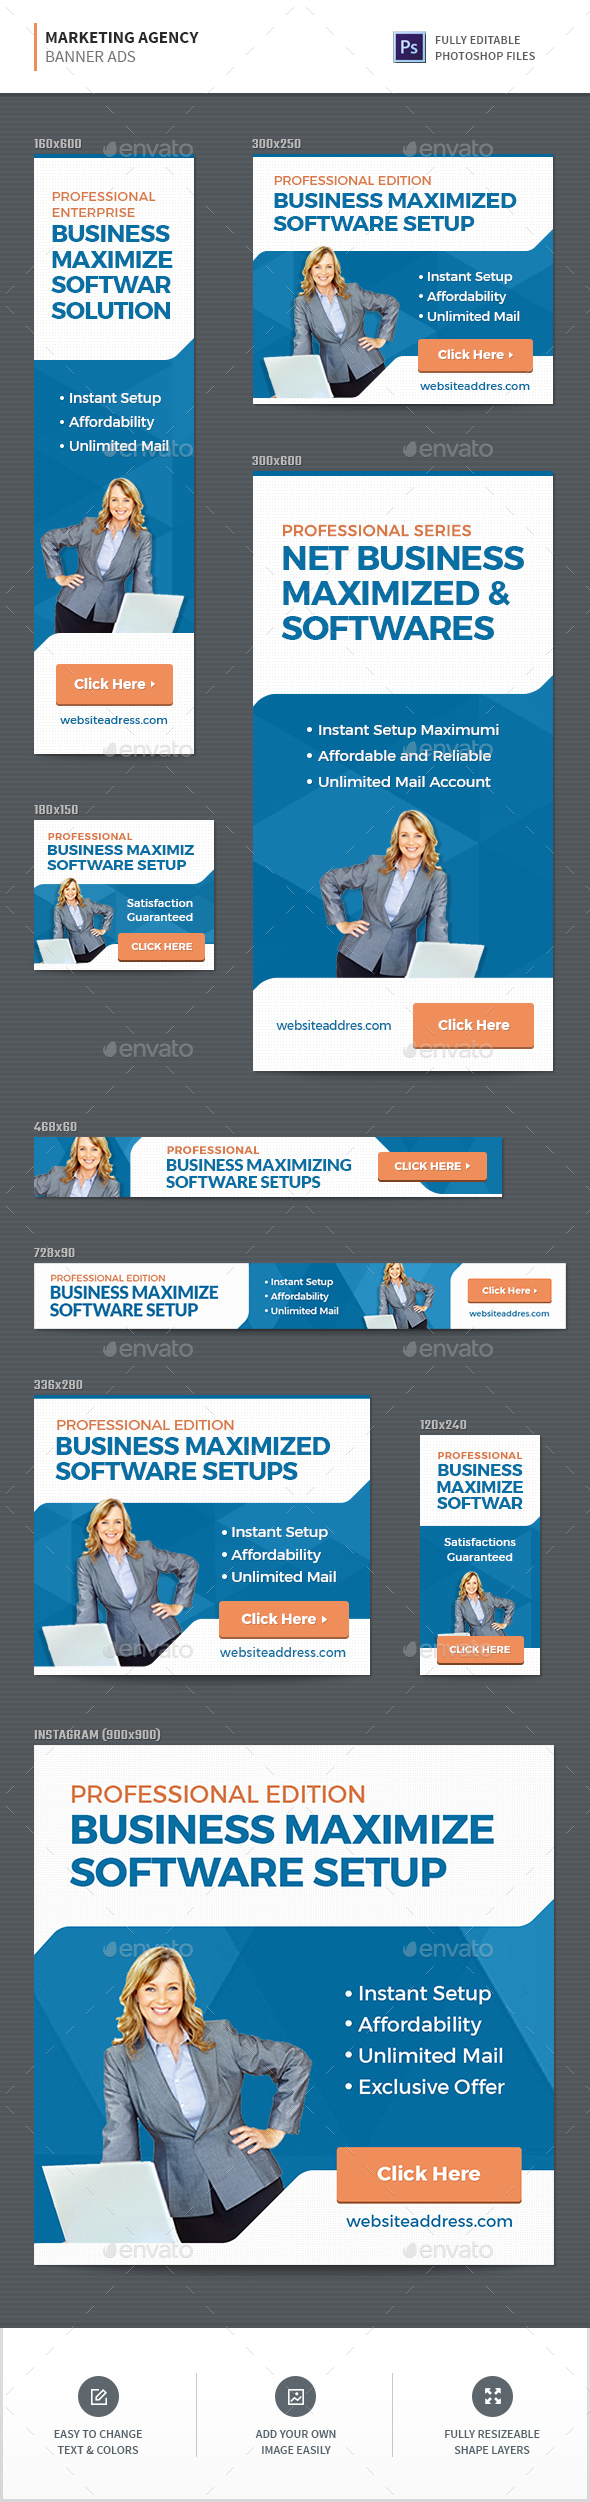 Marketing Agency Banners - Banners & Ads Web Elements